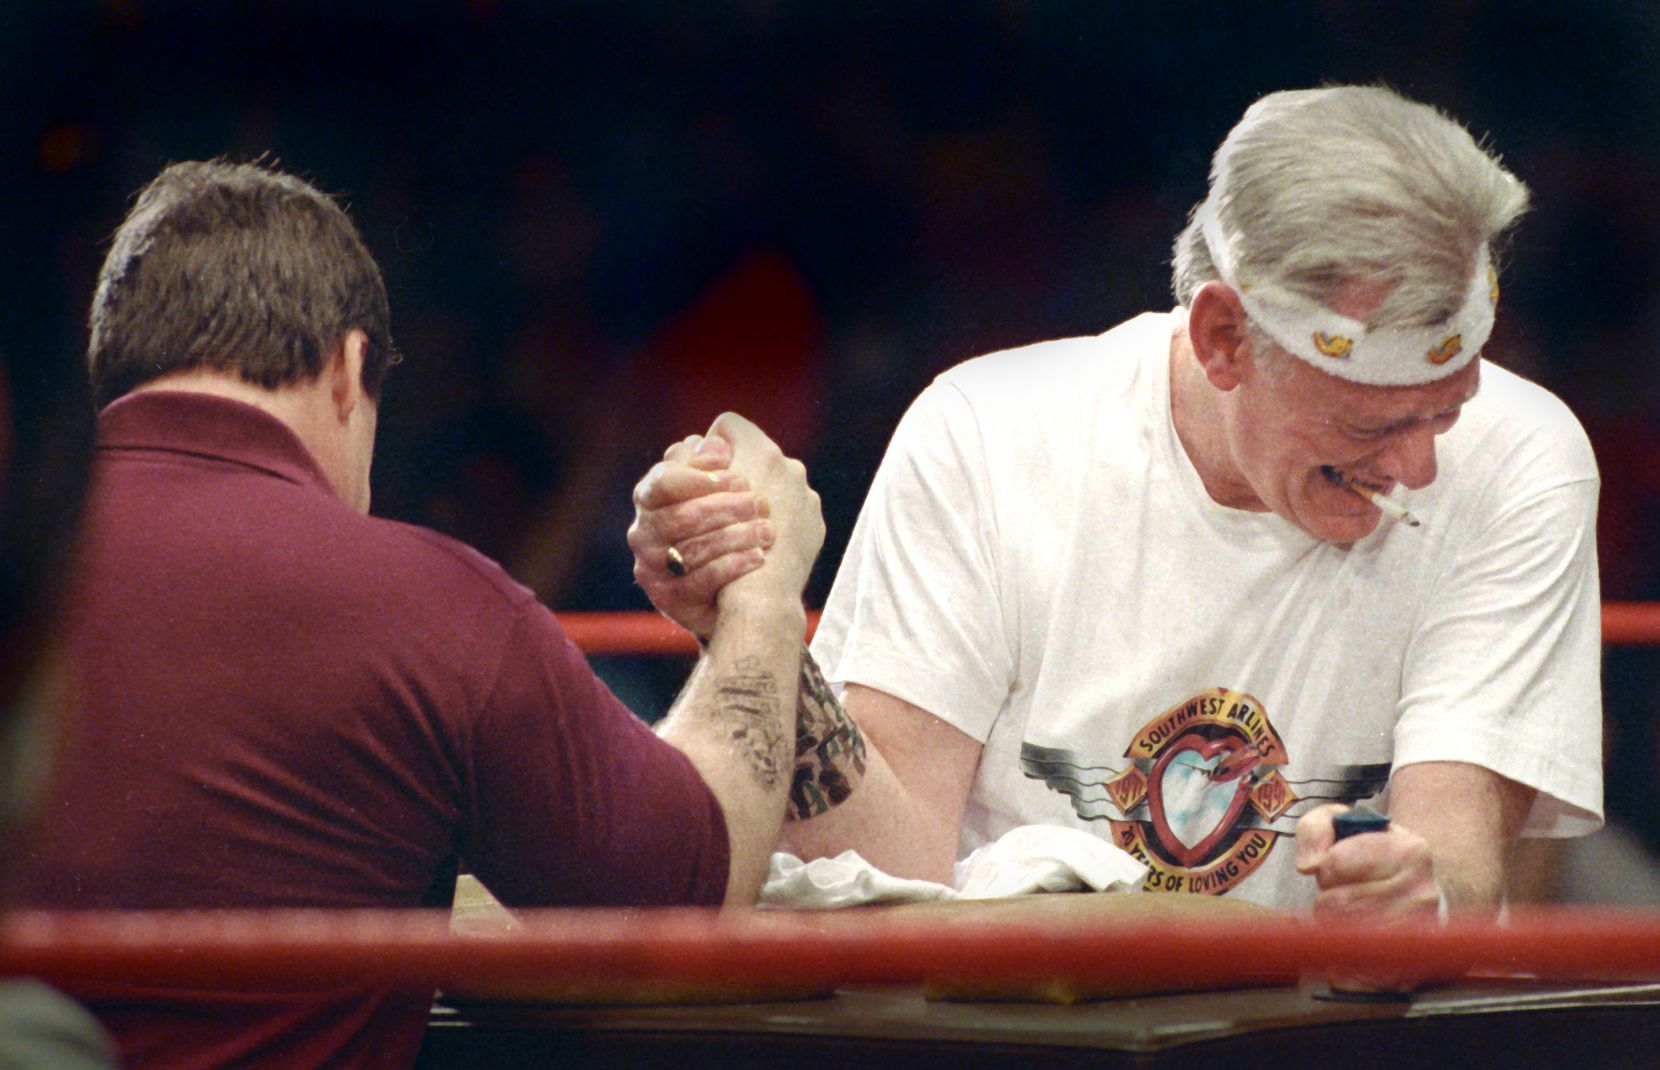 """Former Southwest Airlines CEO Herb Kelleher arm wrestles Kurt Herwald, CEO of Stevens Aviation Inc., at the Malice in Dallas at the Sportatorium on March 20, 1992, for the rights to the slogan """"Plane Smart."""" Kelleher won the match, although it was unclear whether the outcome was predetermined."""